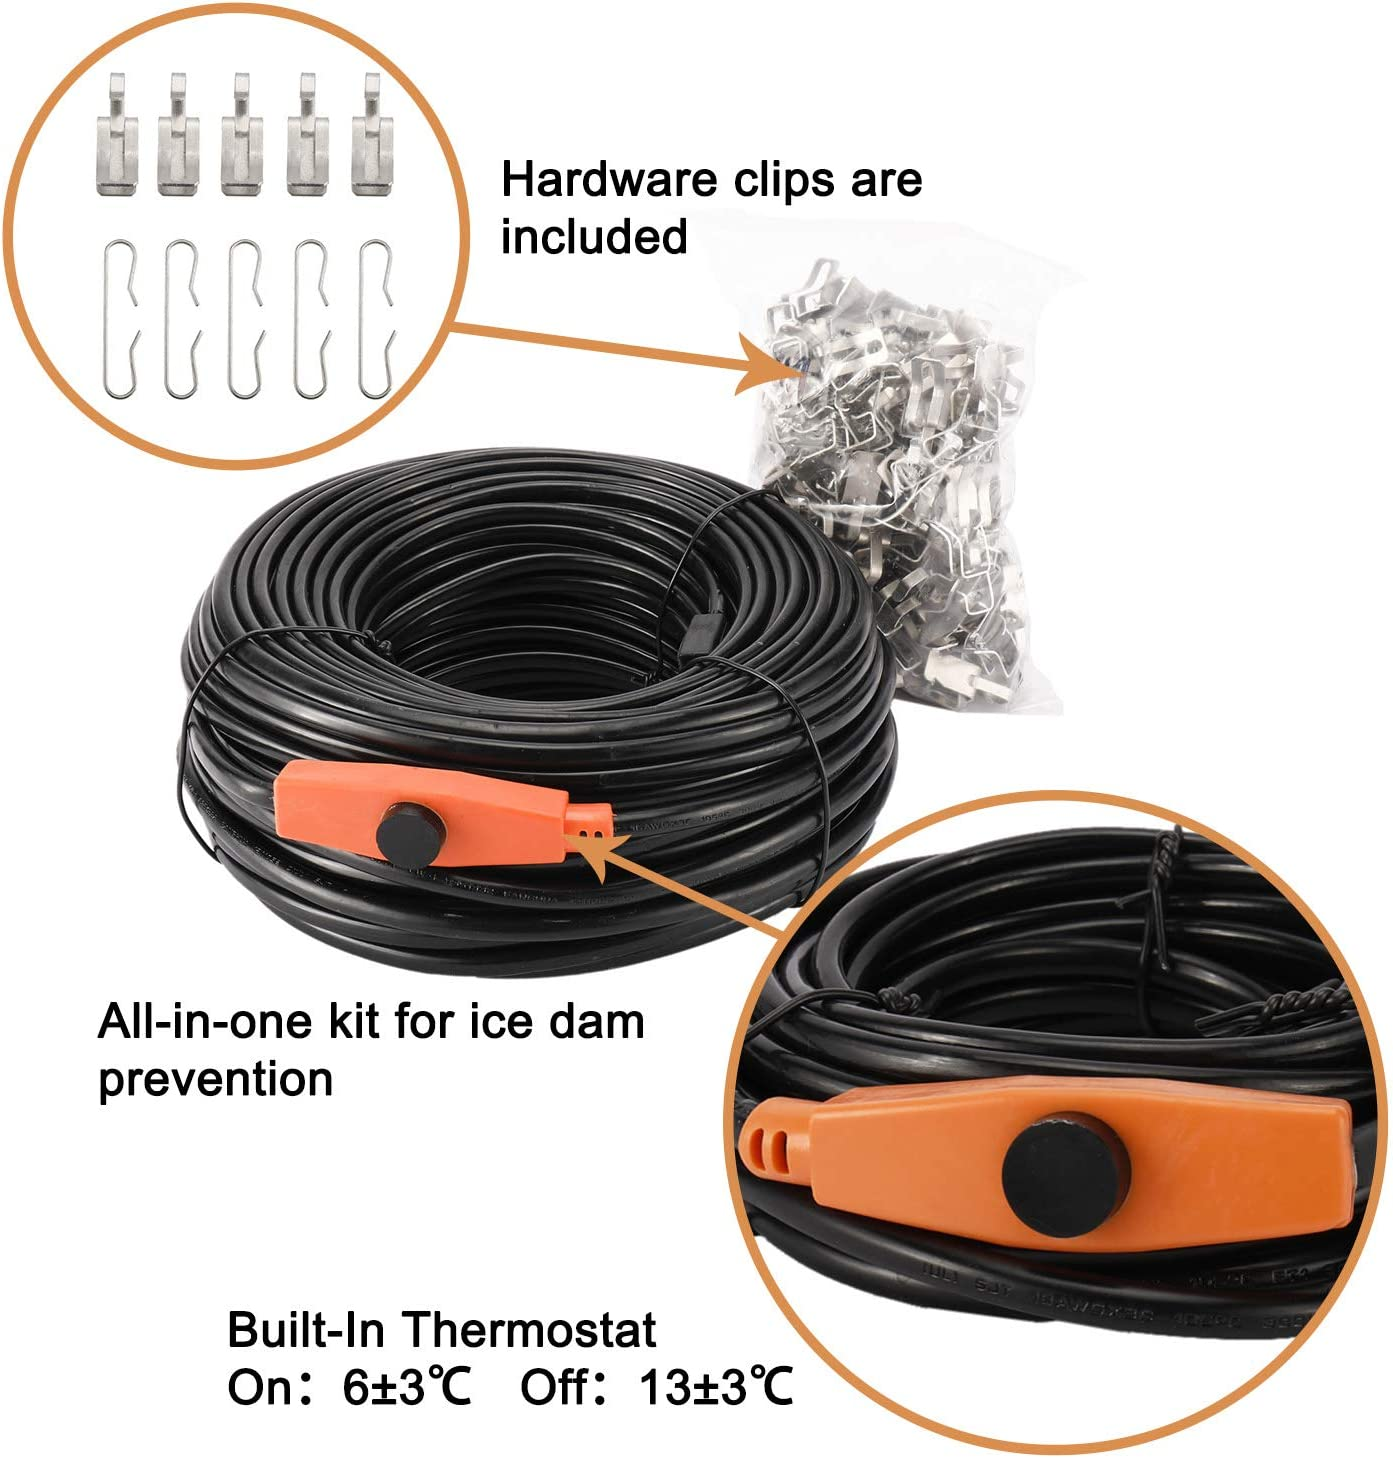 On:6/±3℃ Off:13/±3℃ DasMarine Roof Gutter De-Icing Heat Cable,Roof Gutter Snow De-Icing Cable,Roof Snow Ice Melter All-in-One Kit for Ice Dam Prevention with Thermostat 160FT